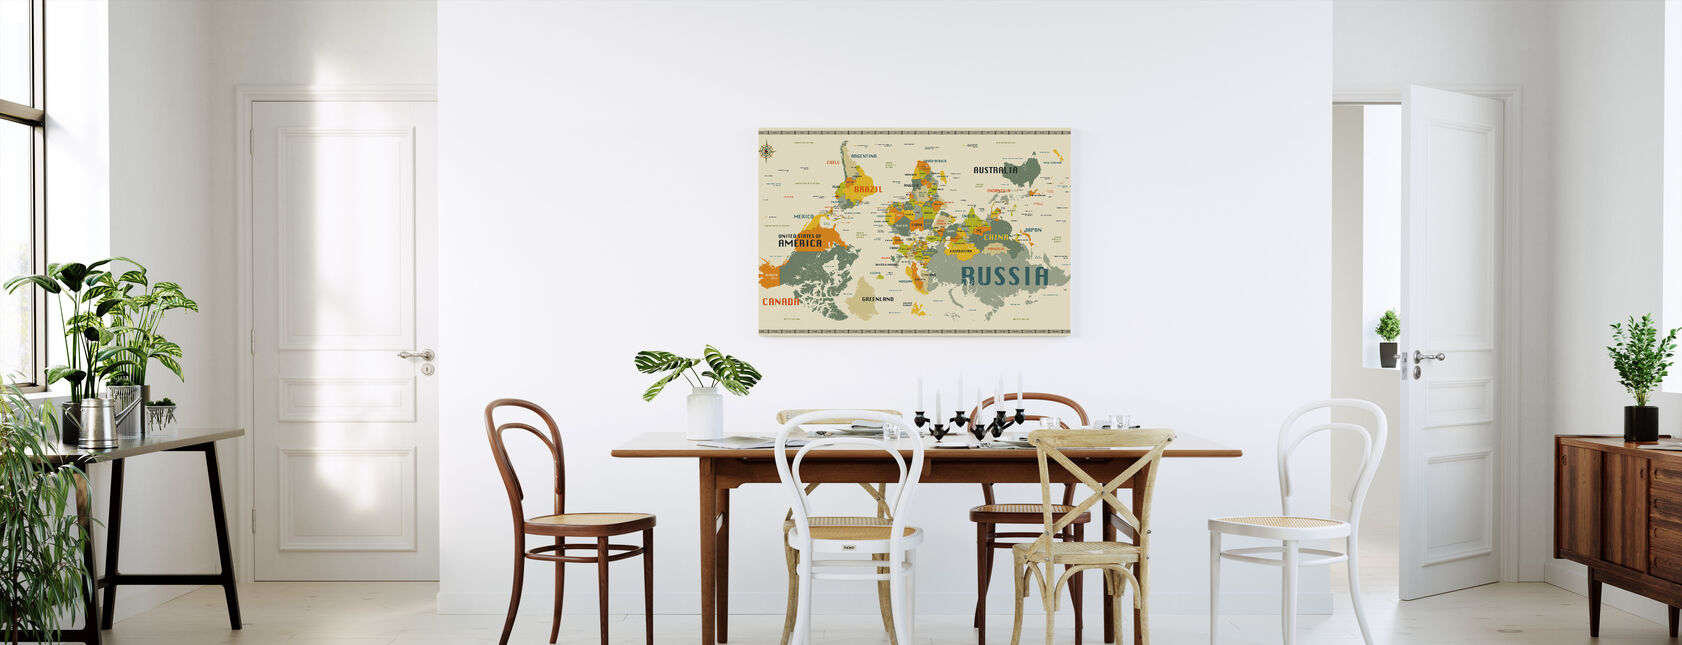 World Map Explore Upside Down - Canvas print - Kitchen